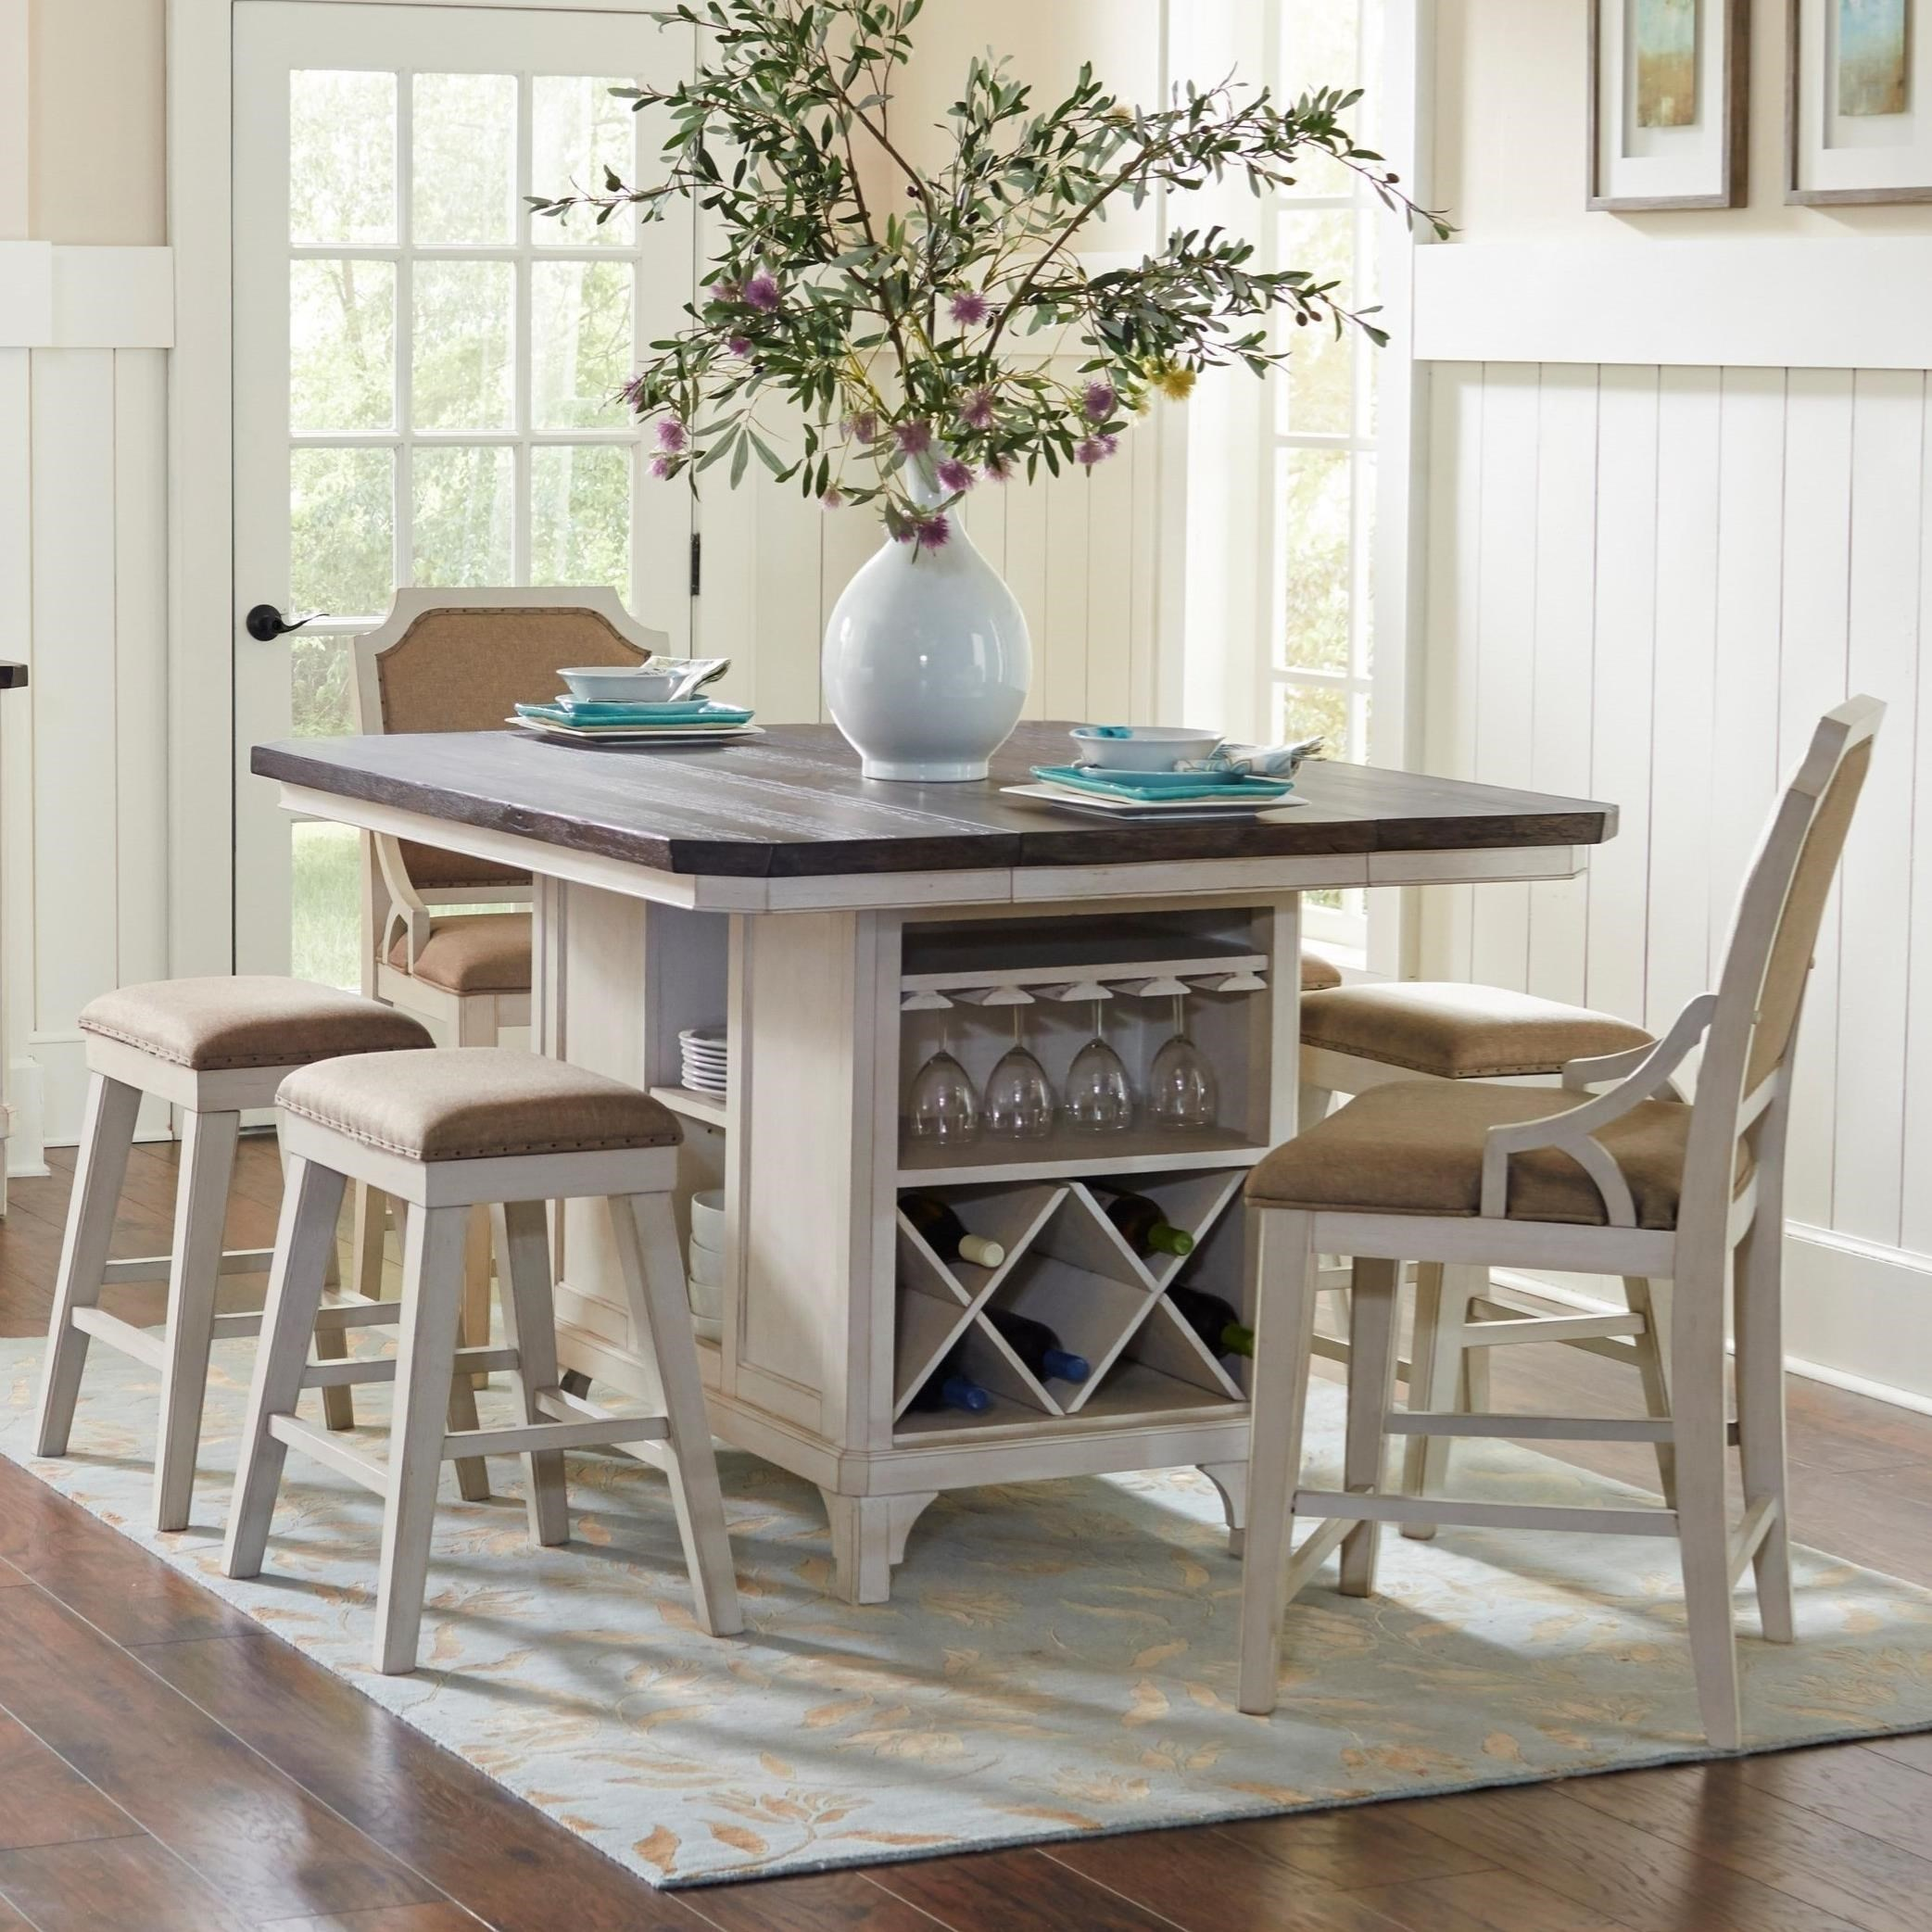 7 piece kitchen island table set mystic cay by avalon - Kitchen island with stools ...